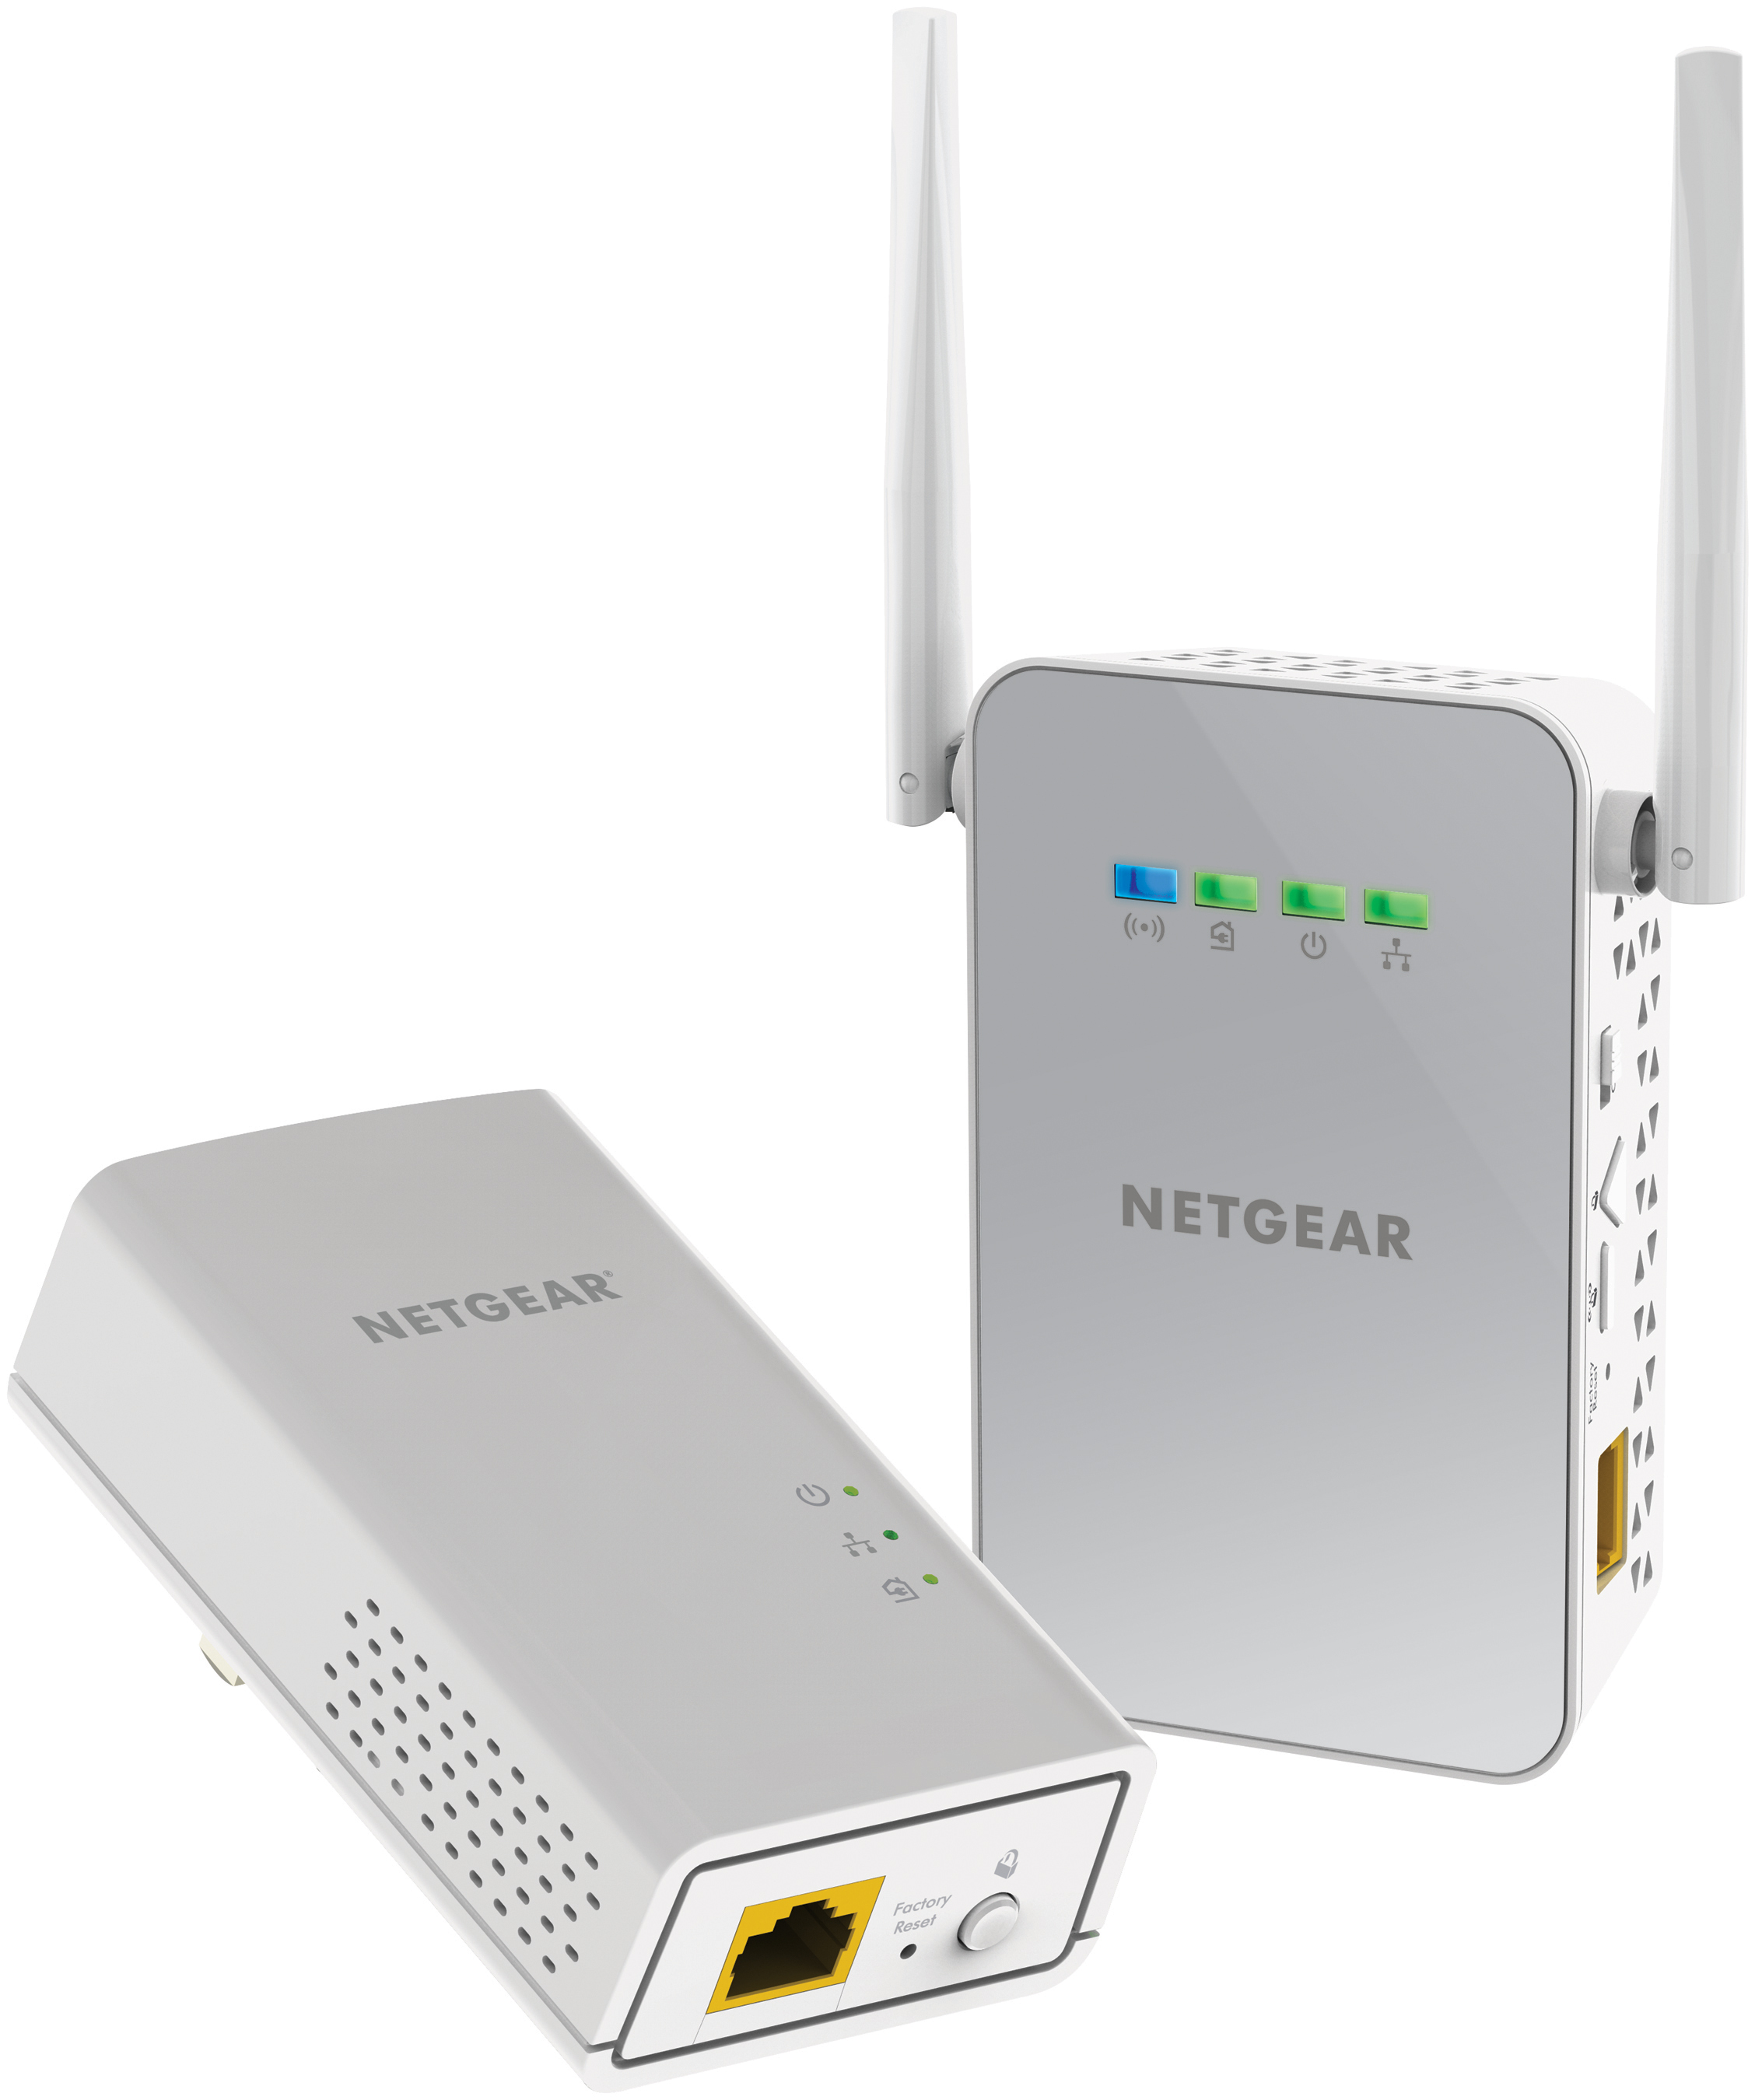 CES 2016: Netgear Unveils New Lineup of WiFi Routers, Range